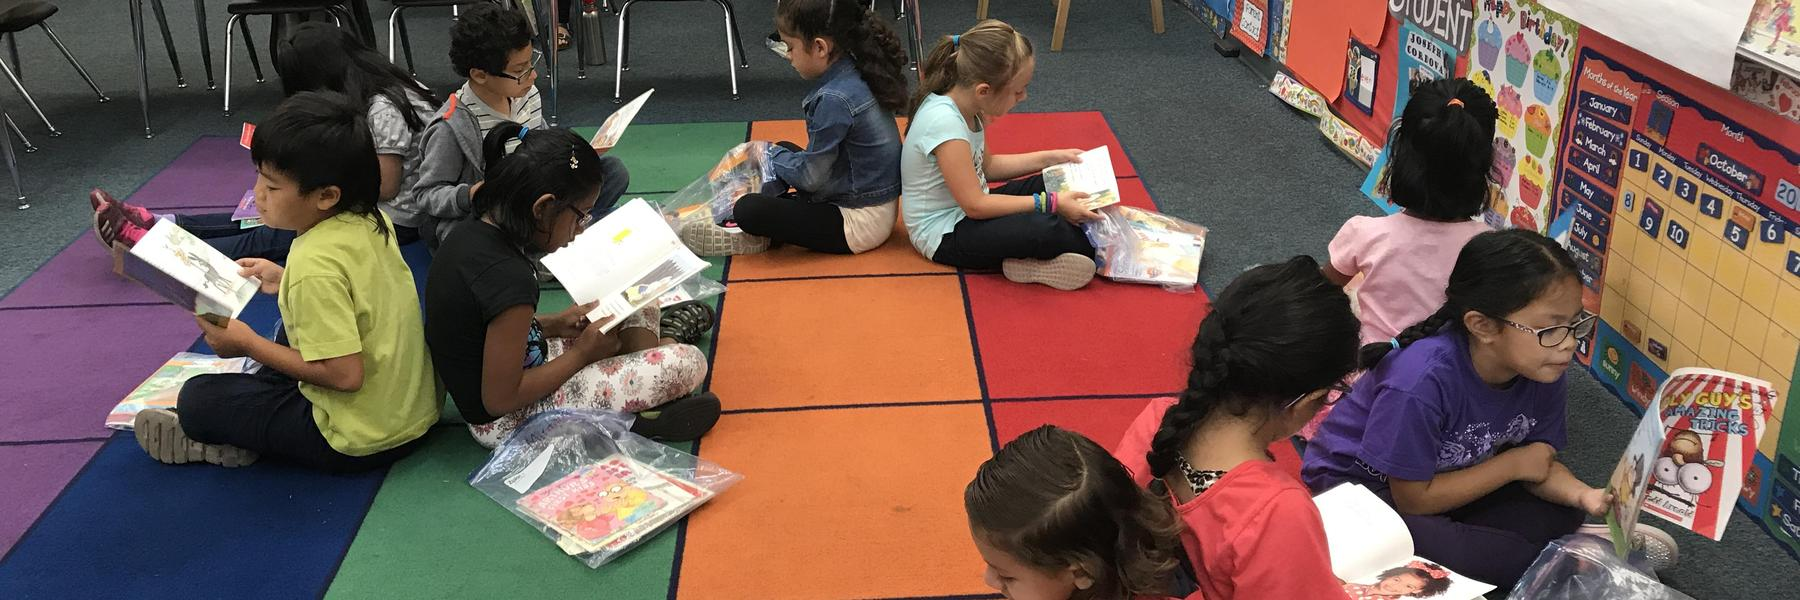 First Graders reading books during Reader's Workshop